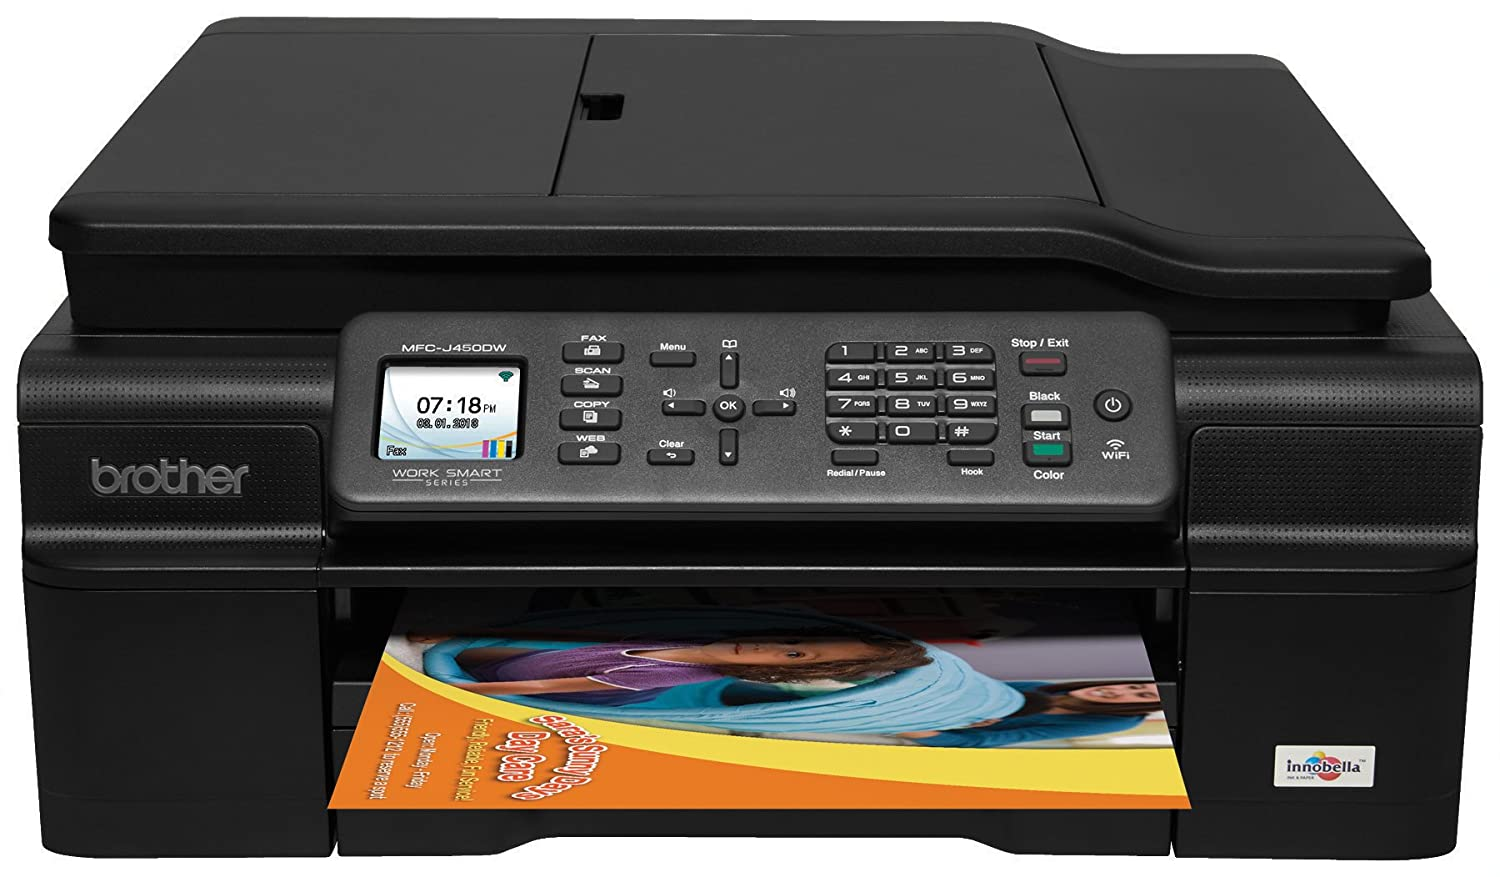 Brother Printer MFCJ450DW Easy-To-Use Inkjet All-In-One Color Printer with Scanner, Copier and Fax